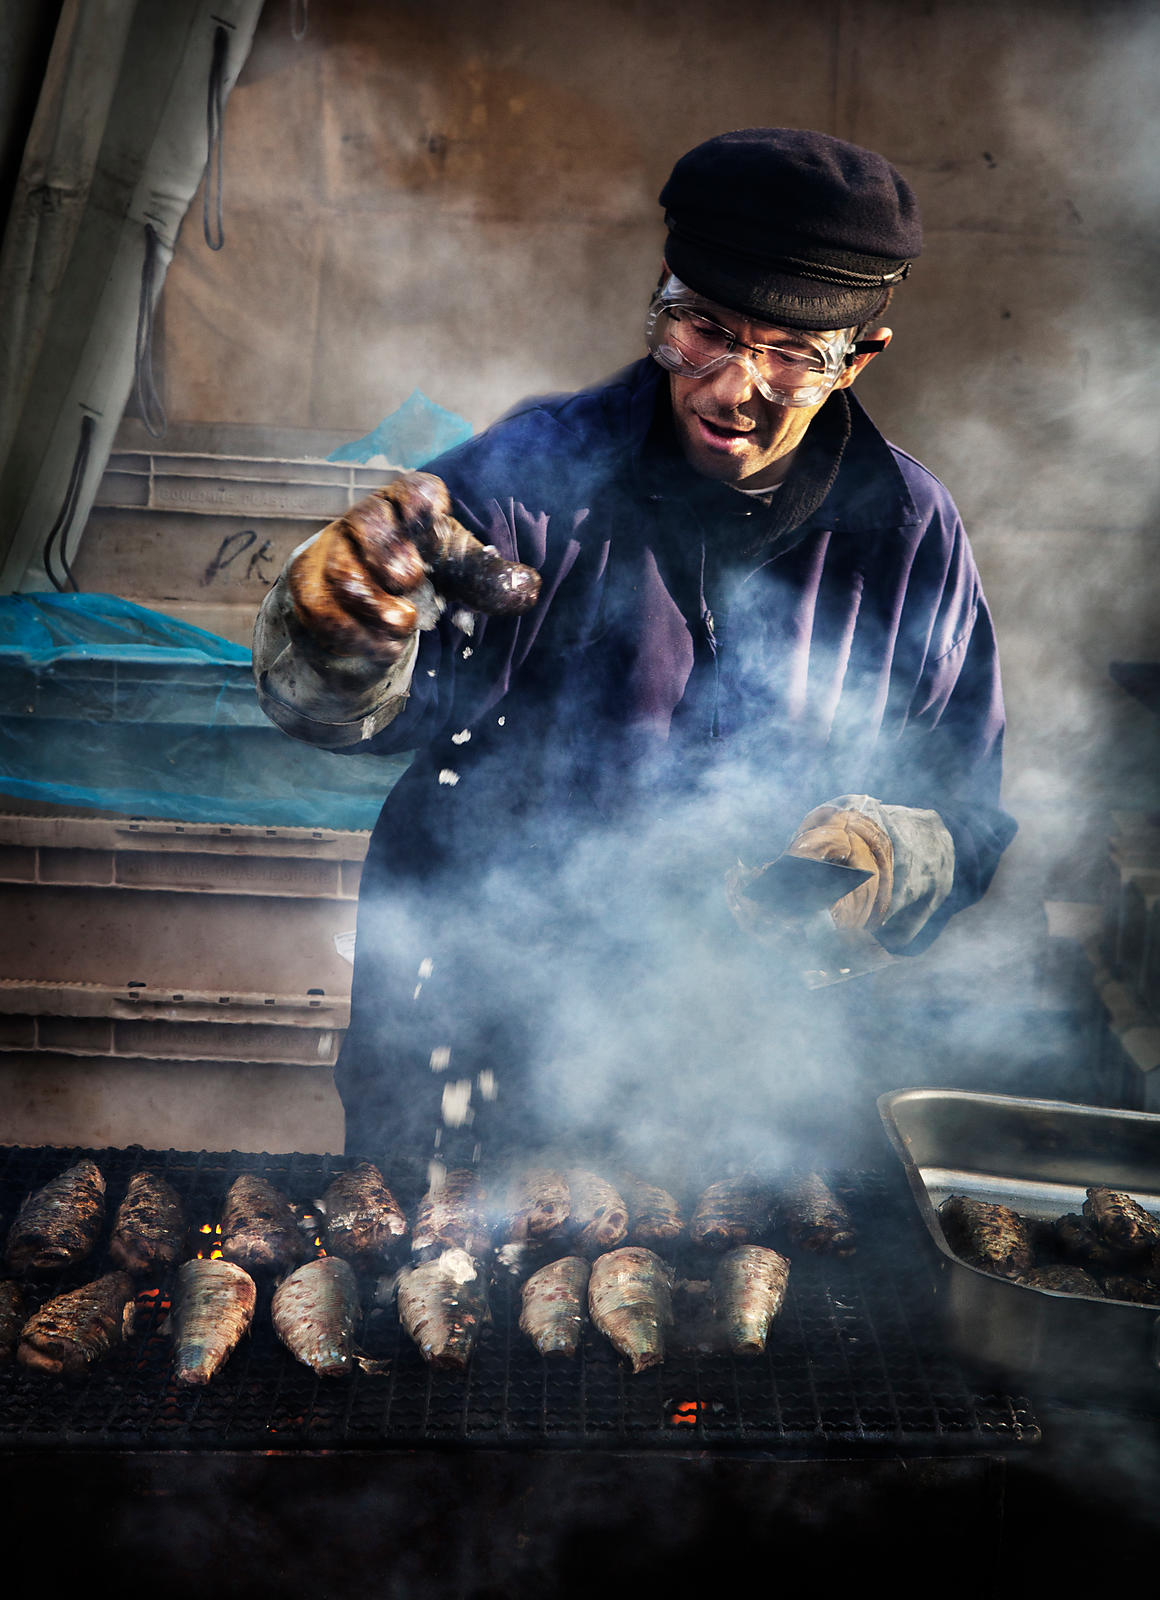 Barbecue at the Herring Festival, Boulogne-sur-Mer, France.